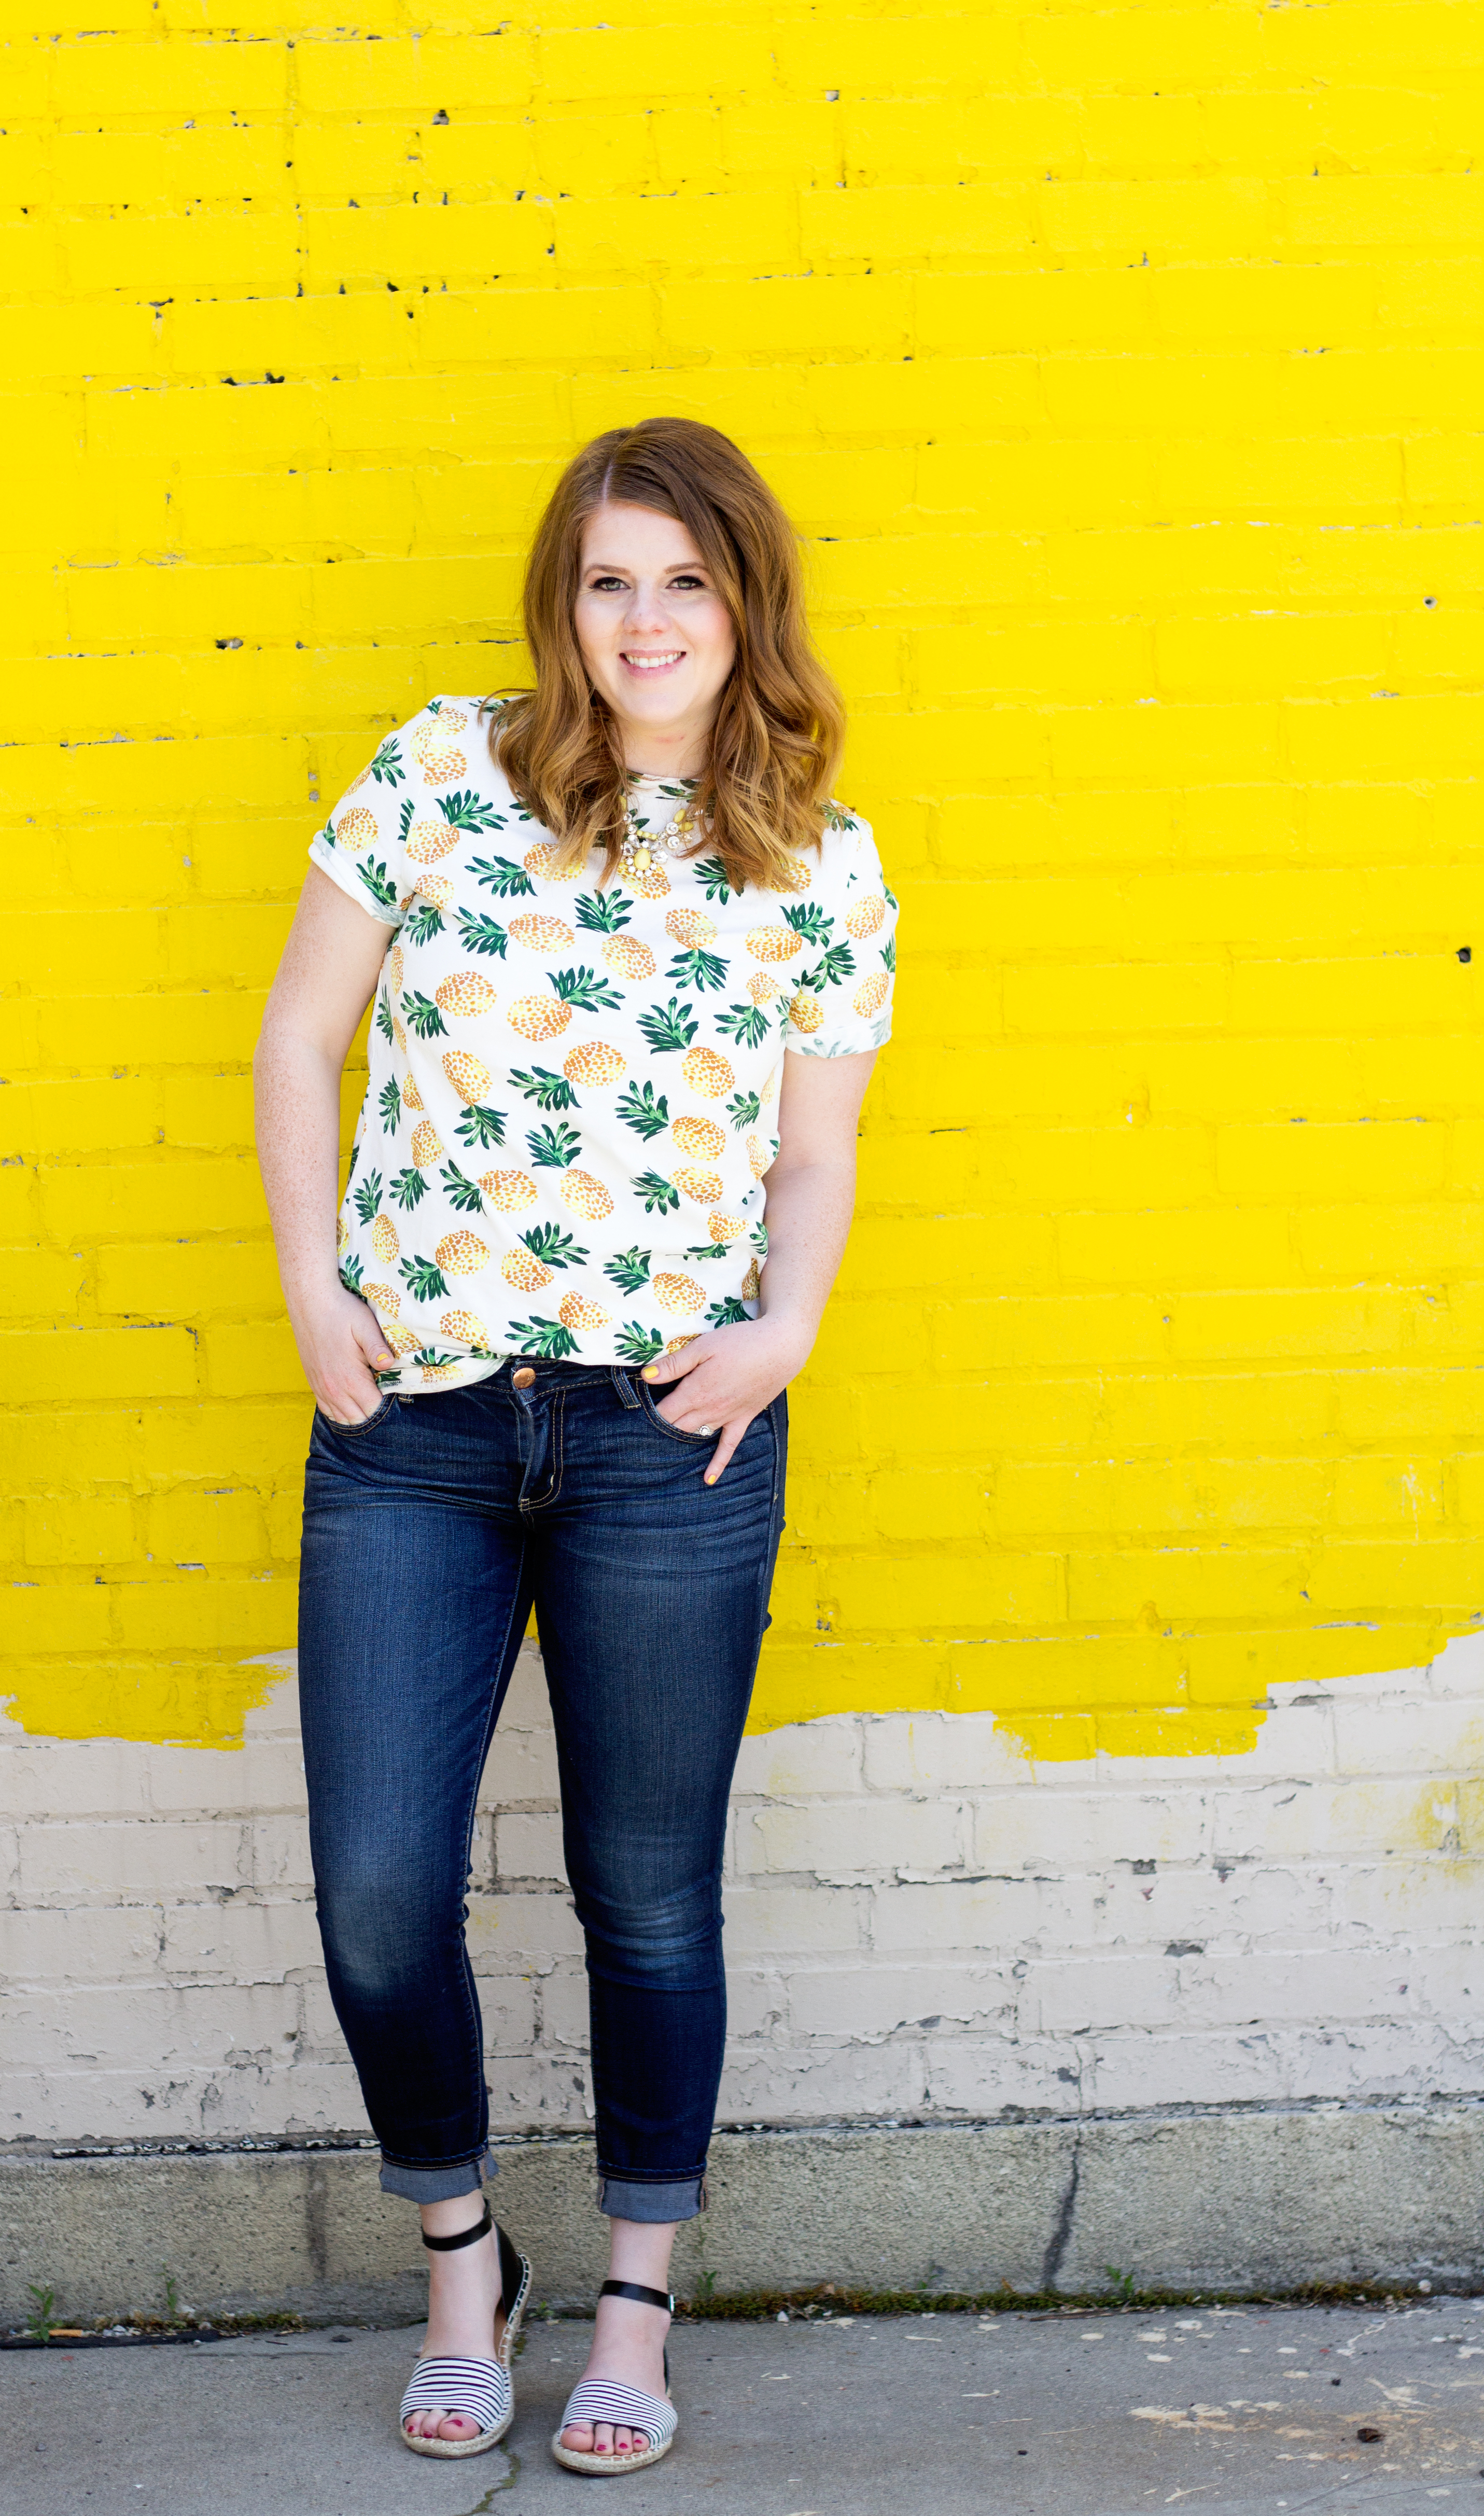 pinapple tee and jeans